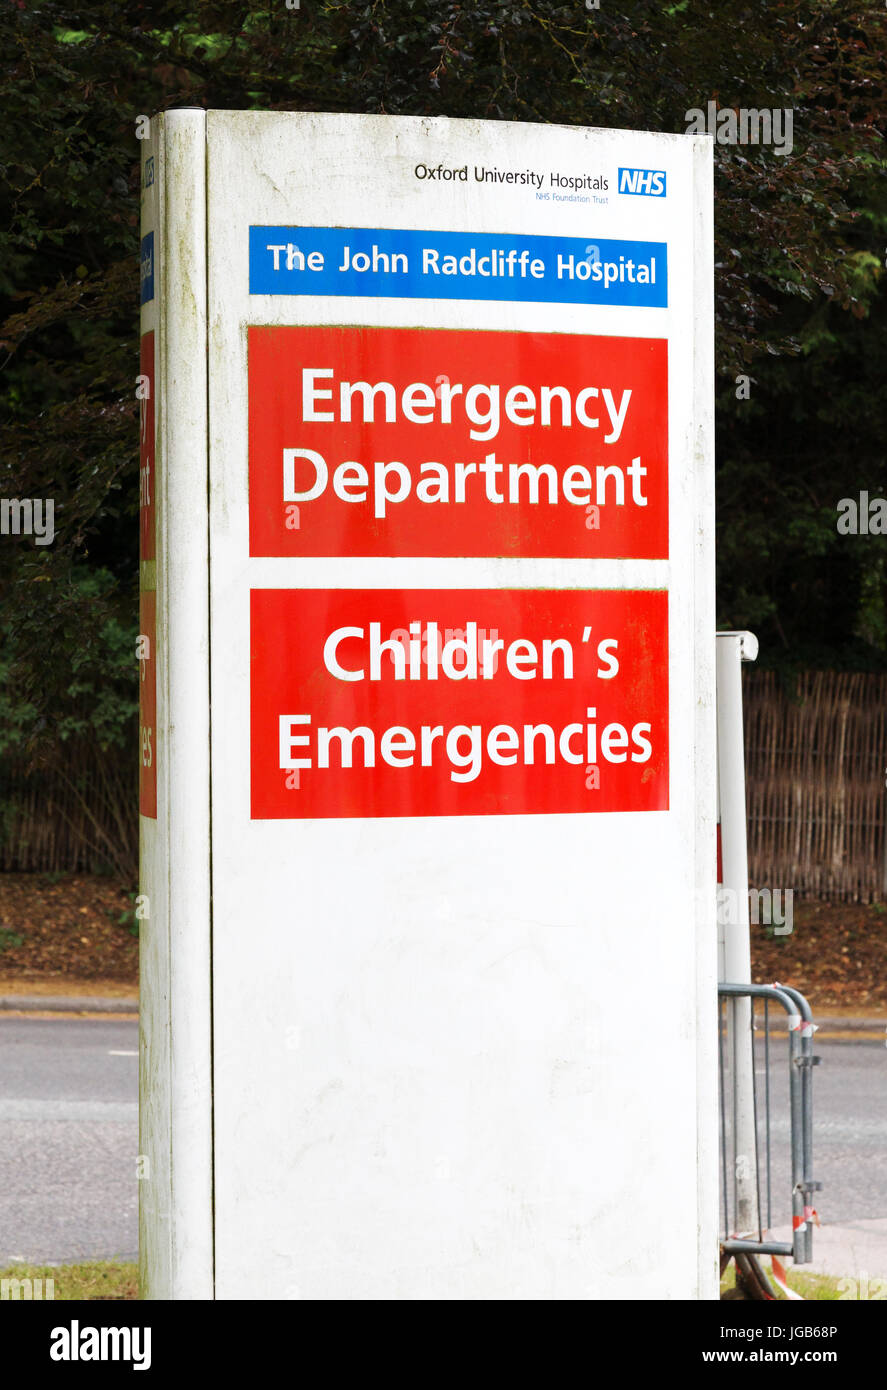 Accident and Emergency UK - sign at the John Radcliffe NHS Hospital, Oxford England UK - Stock Image